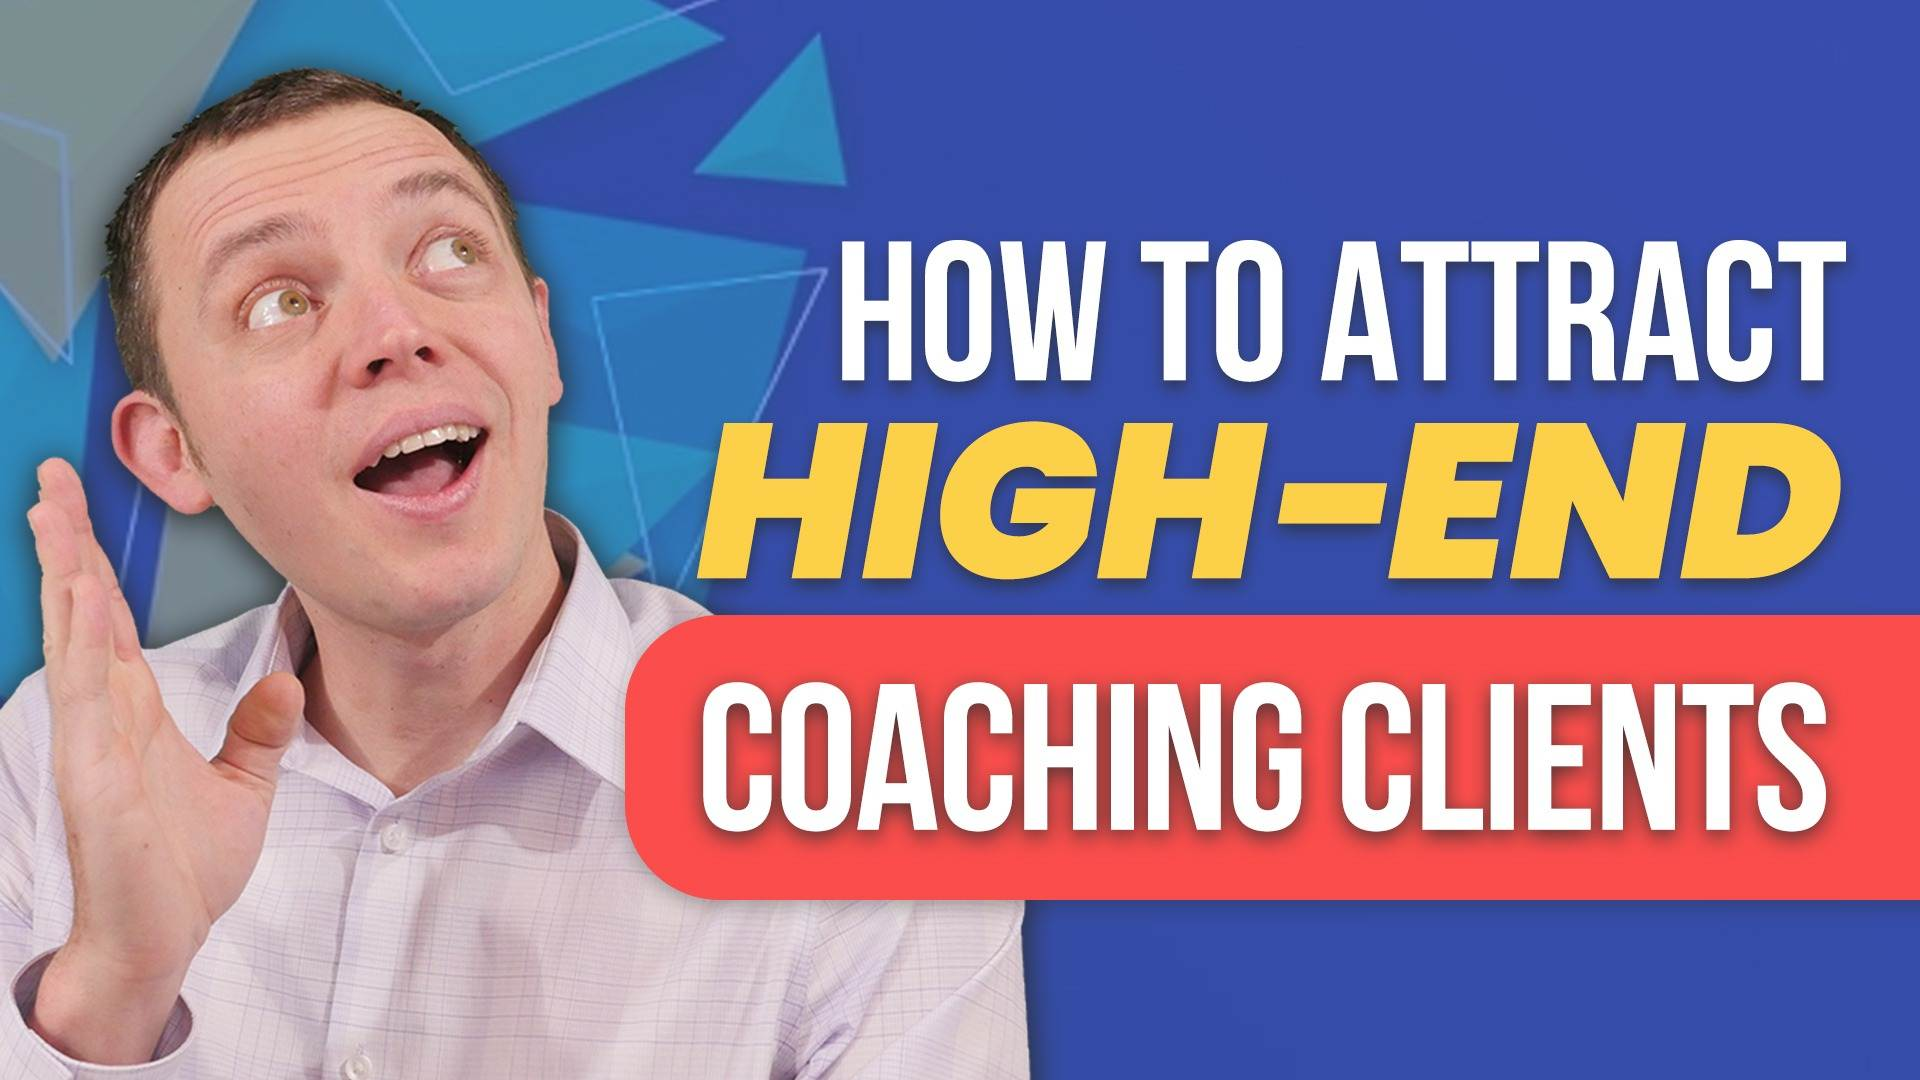 How to Attract More High-End Coaching Clients